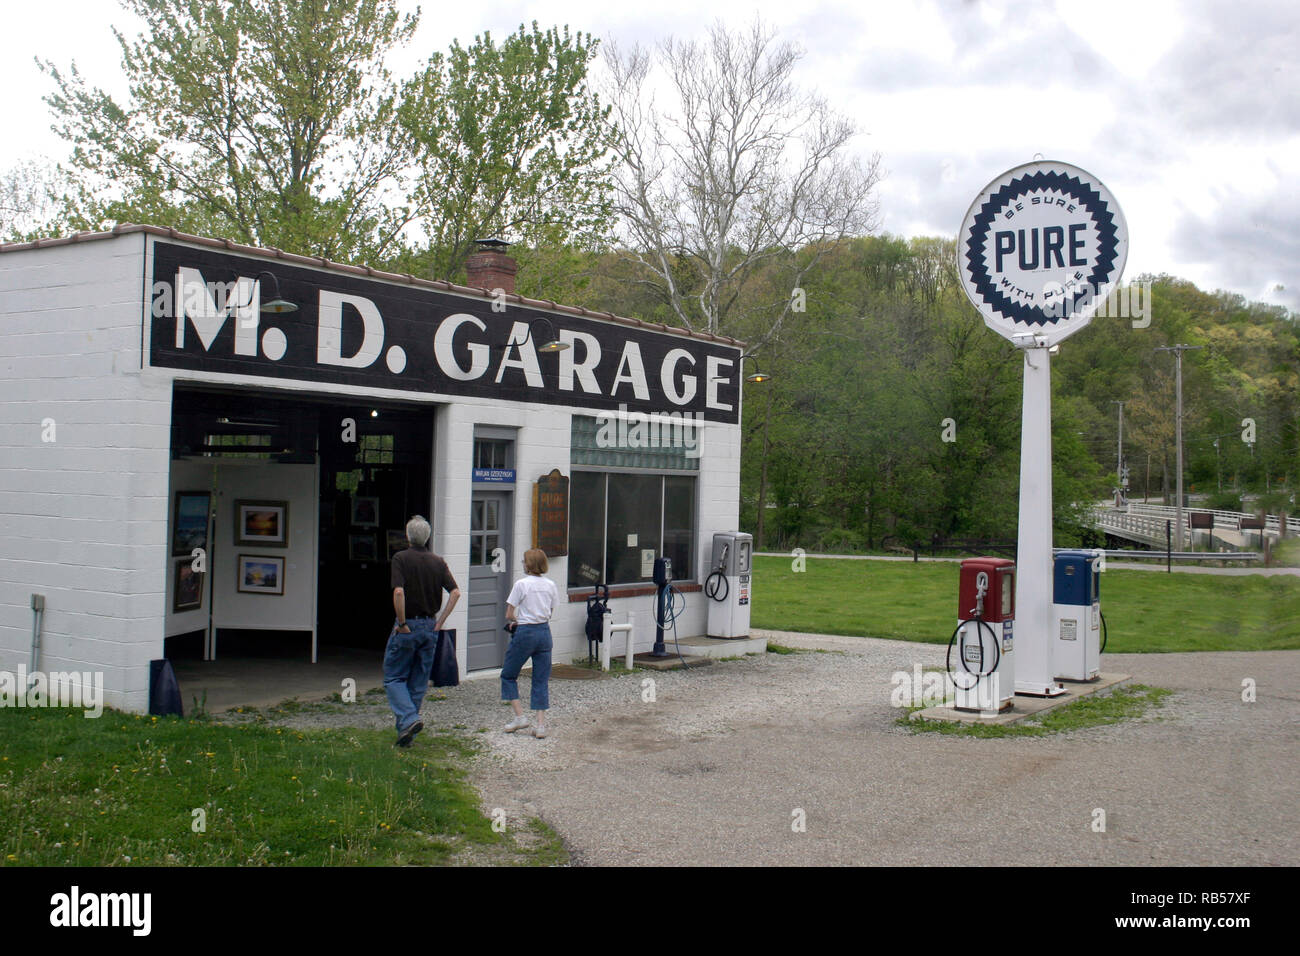 M. D. Garage, historical building in Boston, Ohio, used as an art gallery in the present - Stock Image